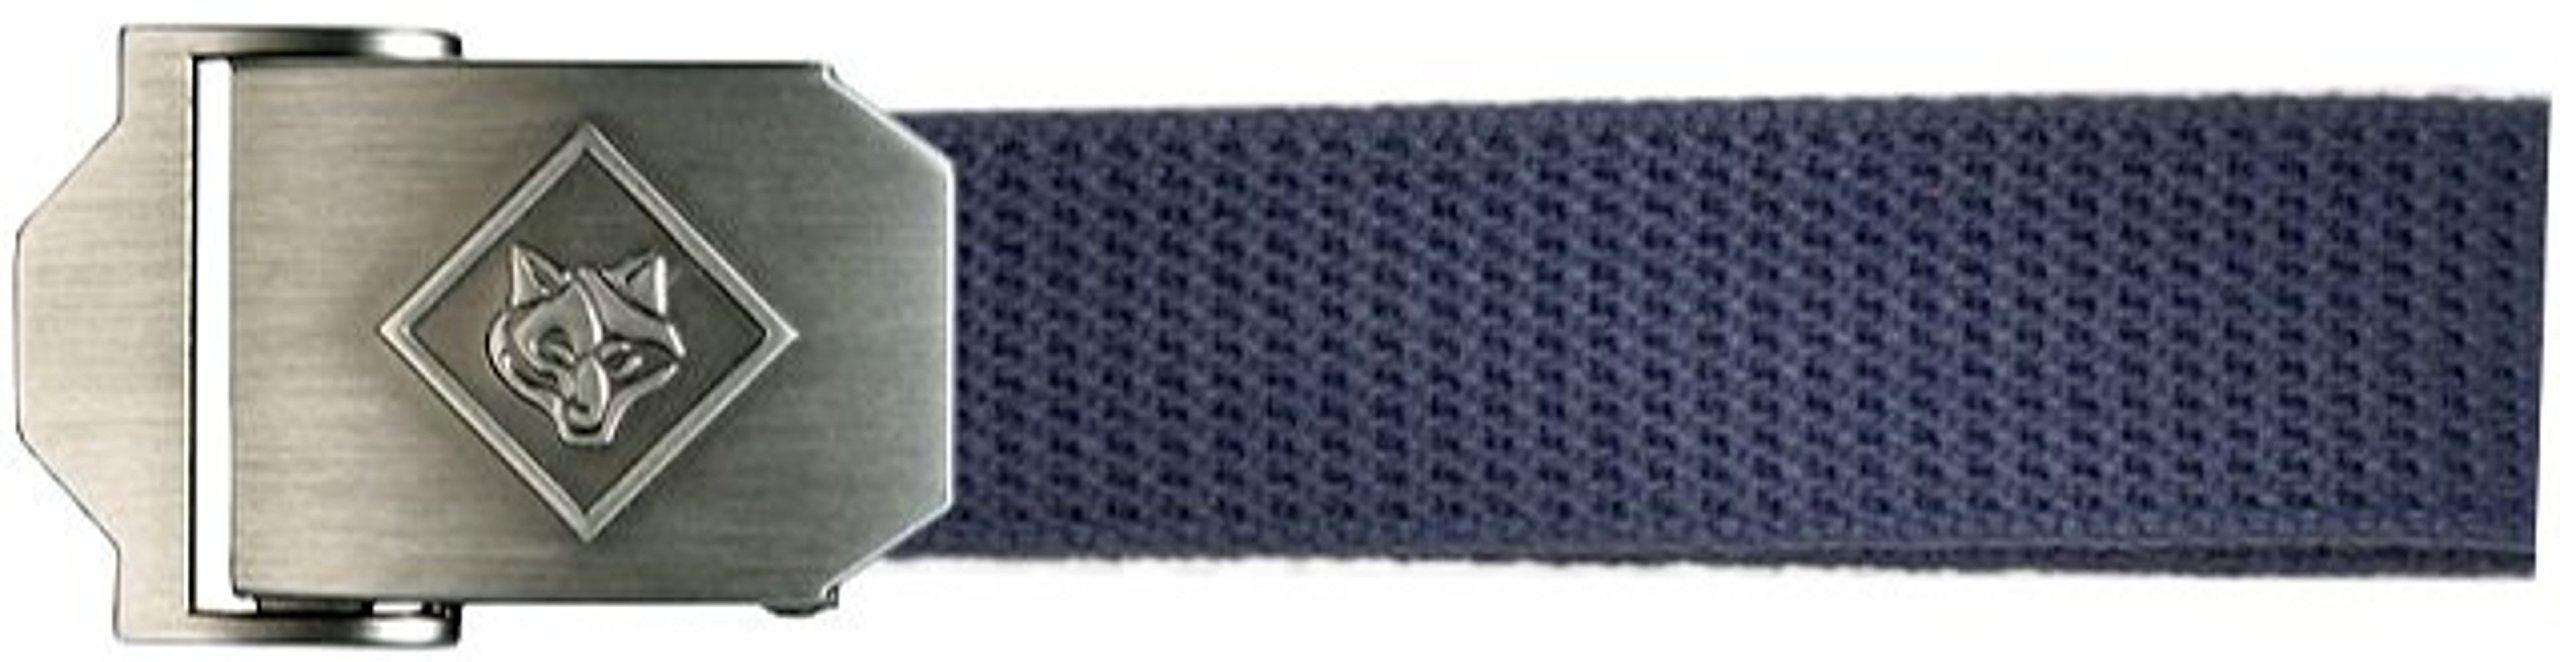 Cub Scout Web Belt - Medium / Large - 40'' - Official BSA Apparel by Boy Scouts of America